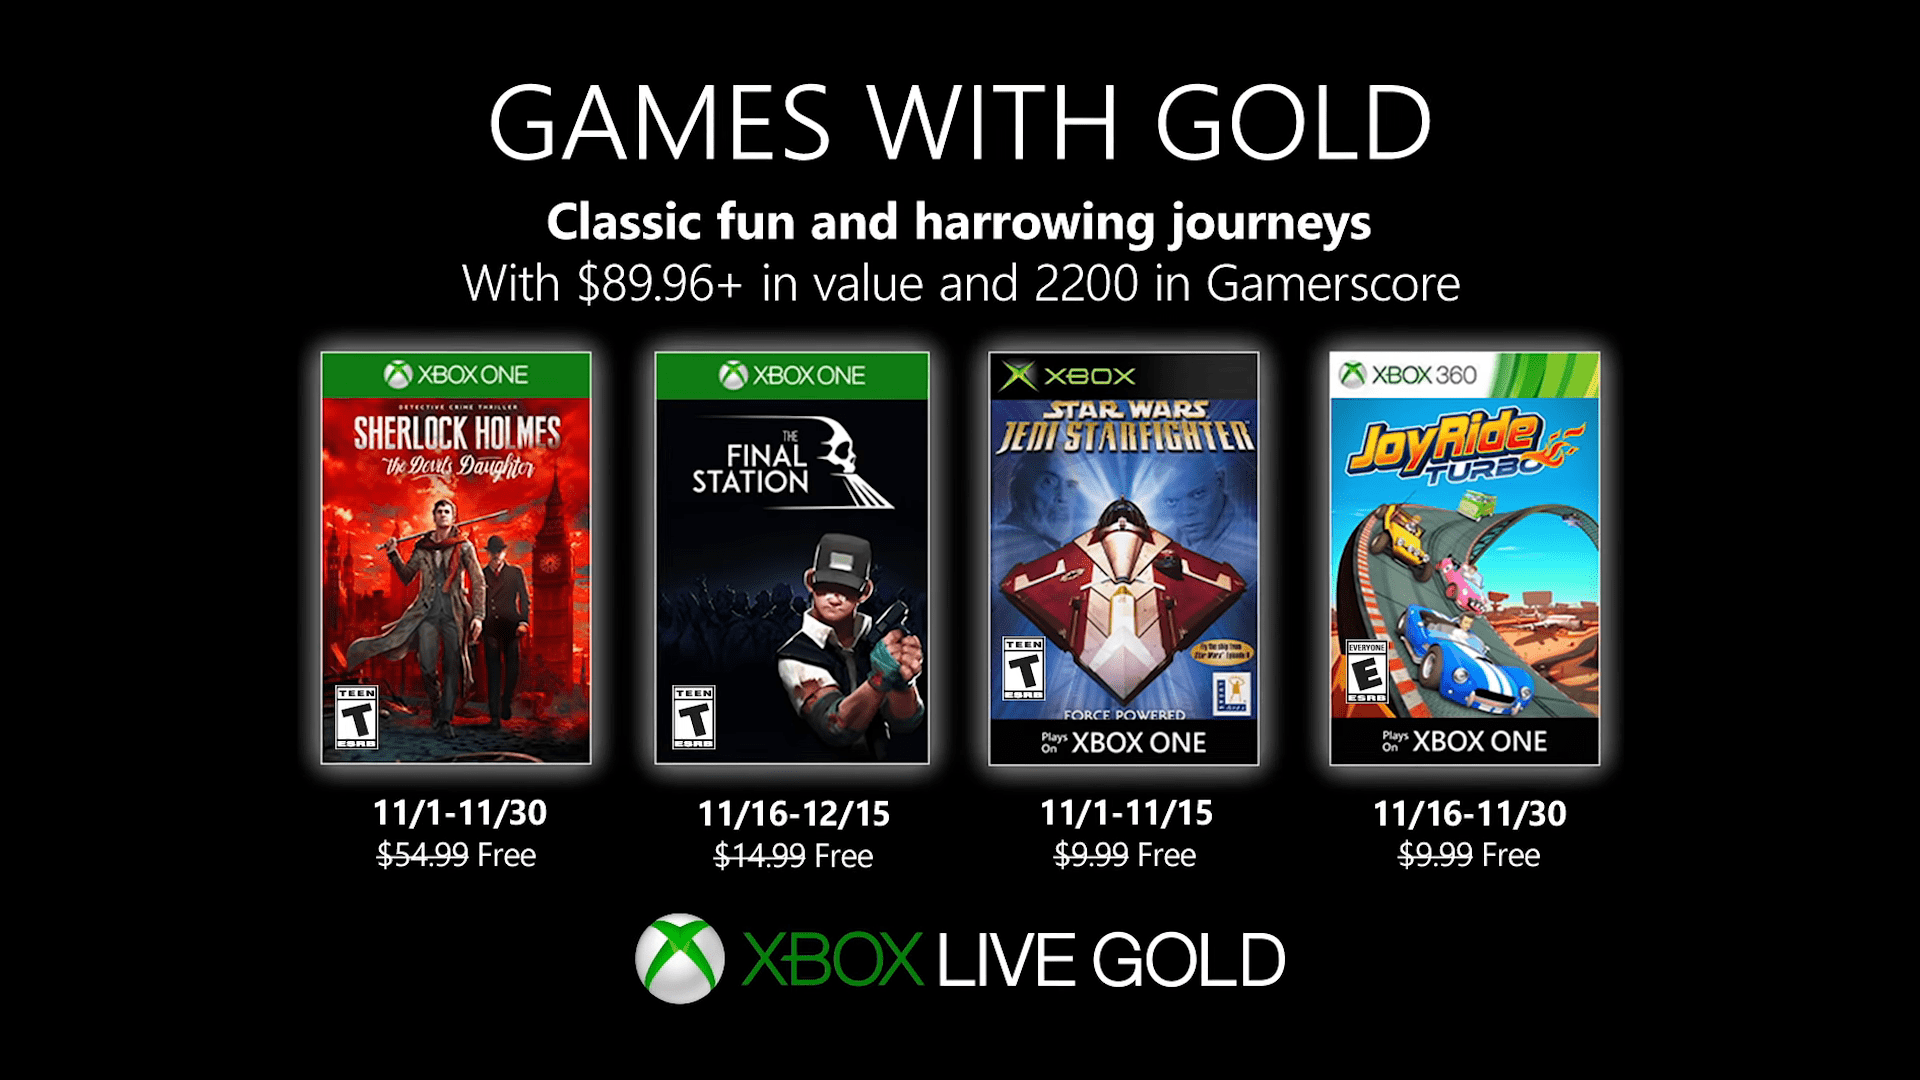 The November Xbox Live Games With Gold Line-Up Has Been Revealed, Featuring An Odd Assortment Of Games